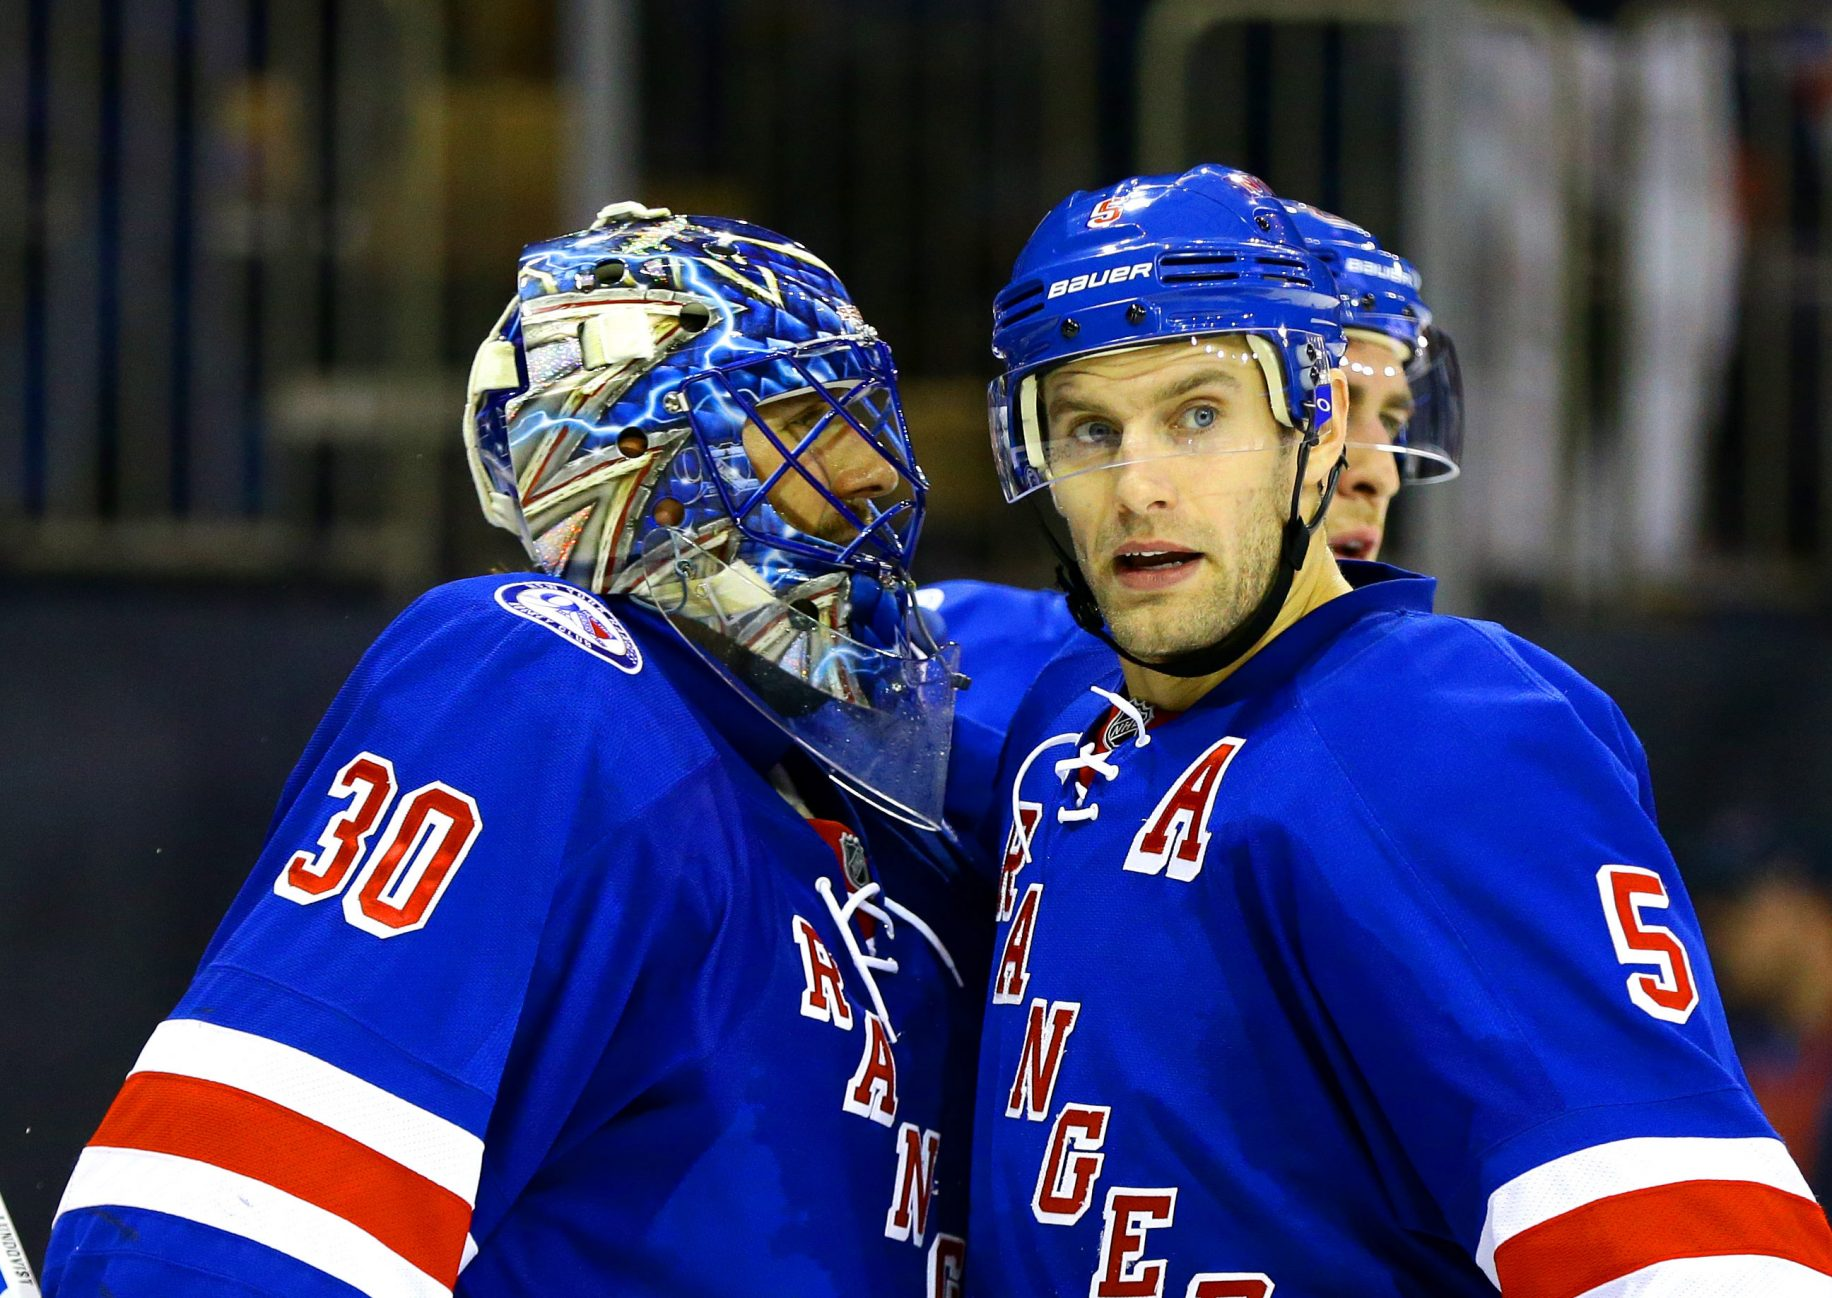 Honor Dan Girardi, But the New York Rangers Would Have Been Better Off With Anton Stralman